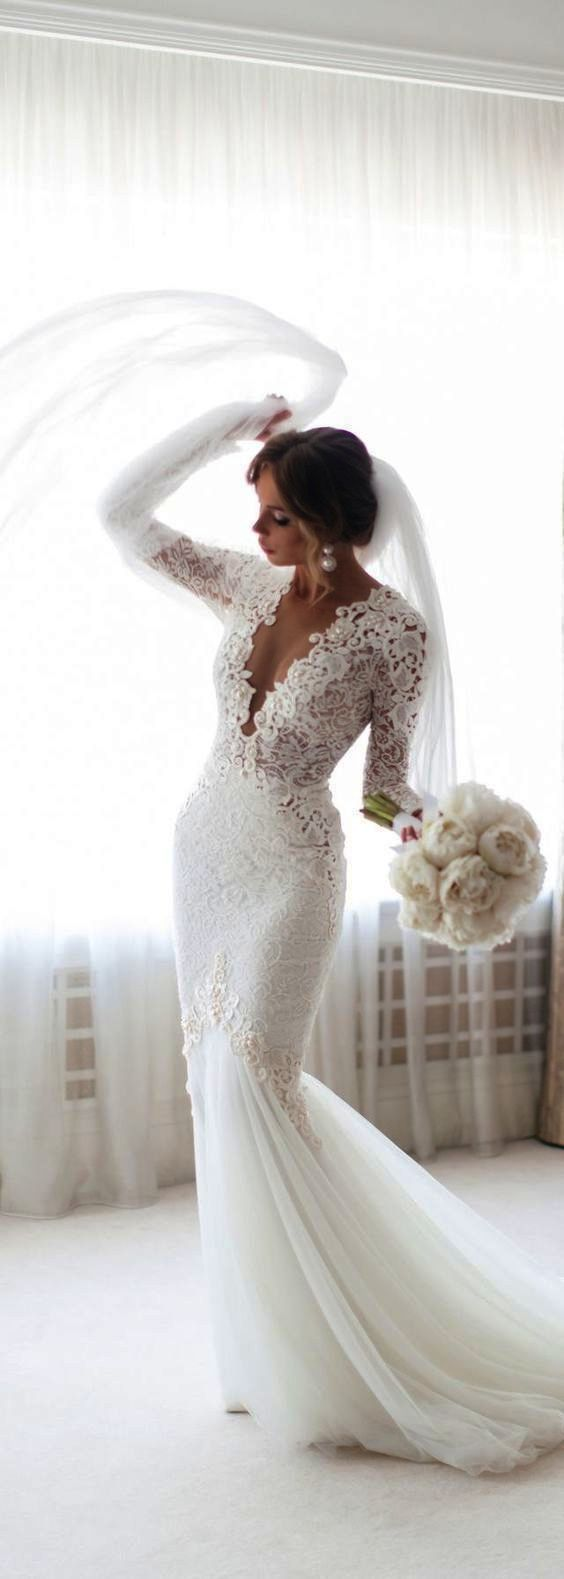 Lace wedding dress high neck lace wedding dresses korean lace